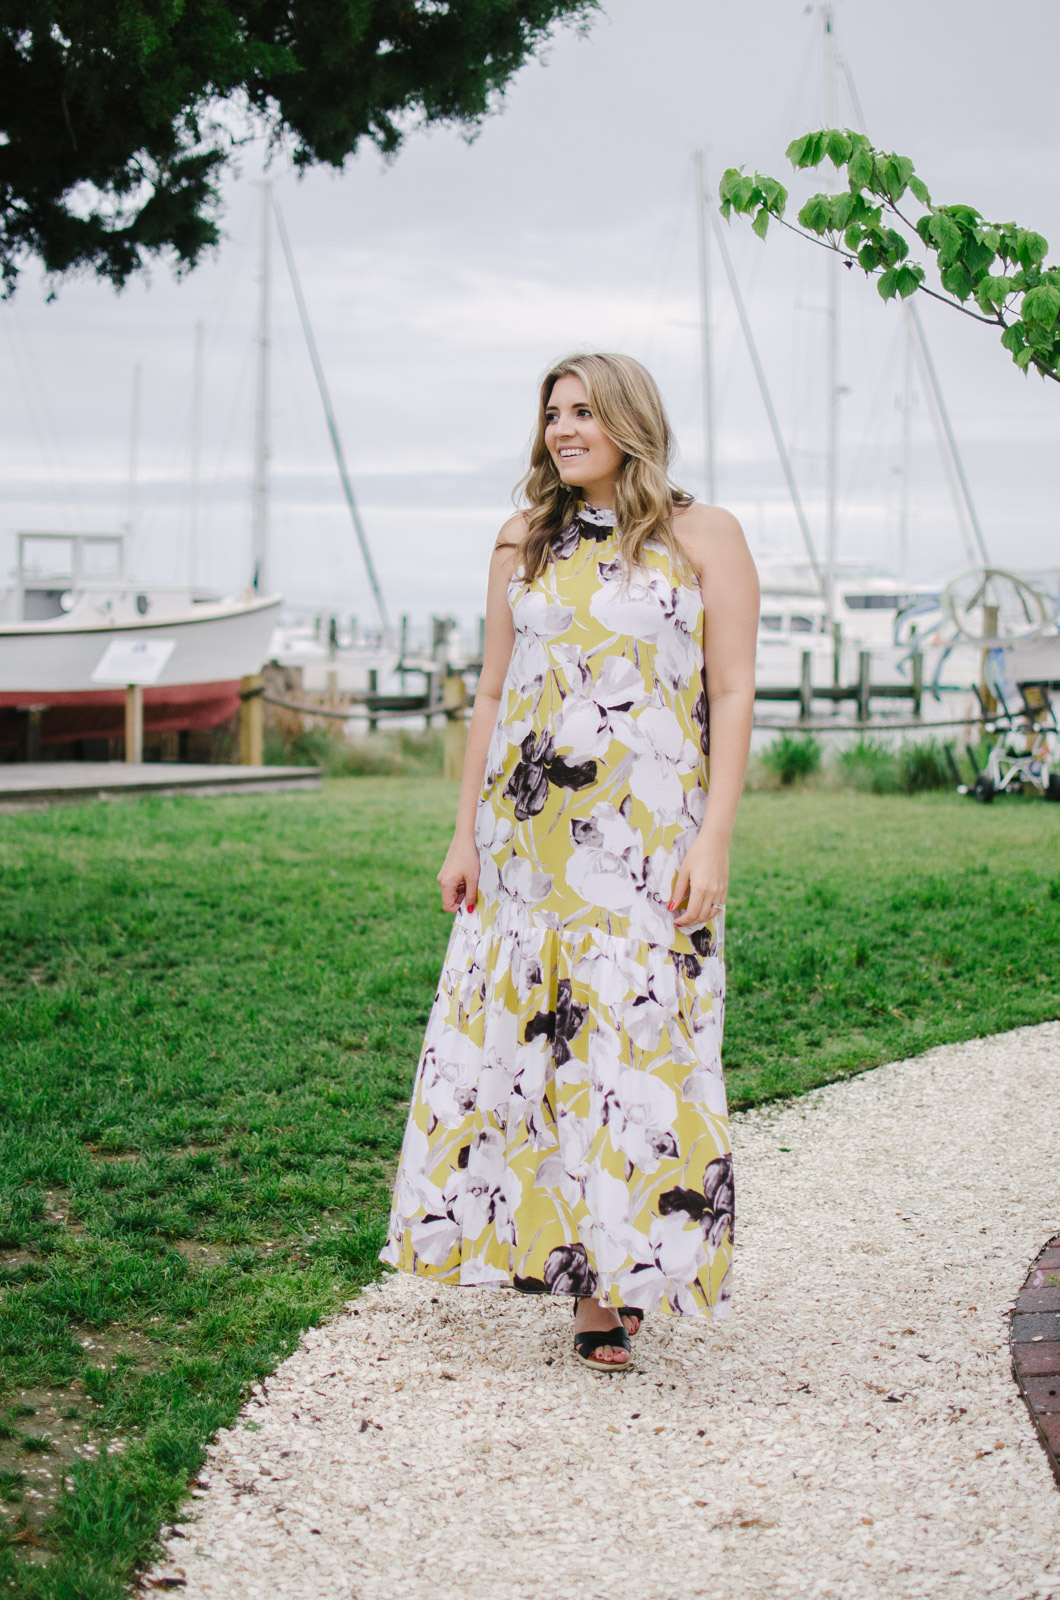 summer pregnancy style: floral maxi dress - the perfect non-maternity maxi dress for summer | bylaurenm.com